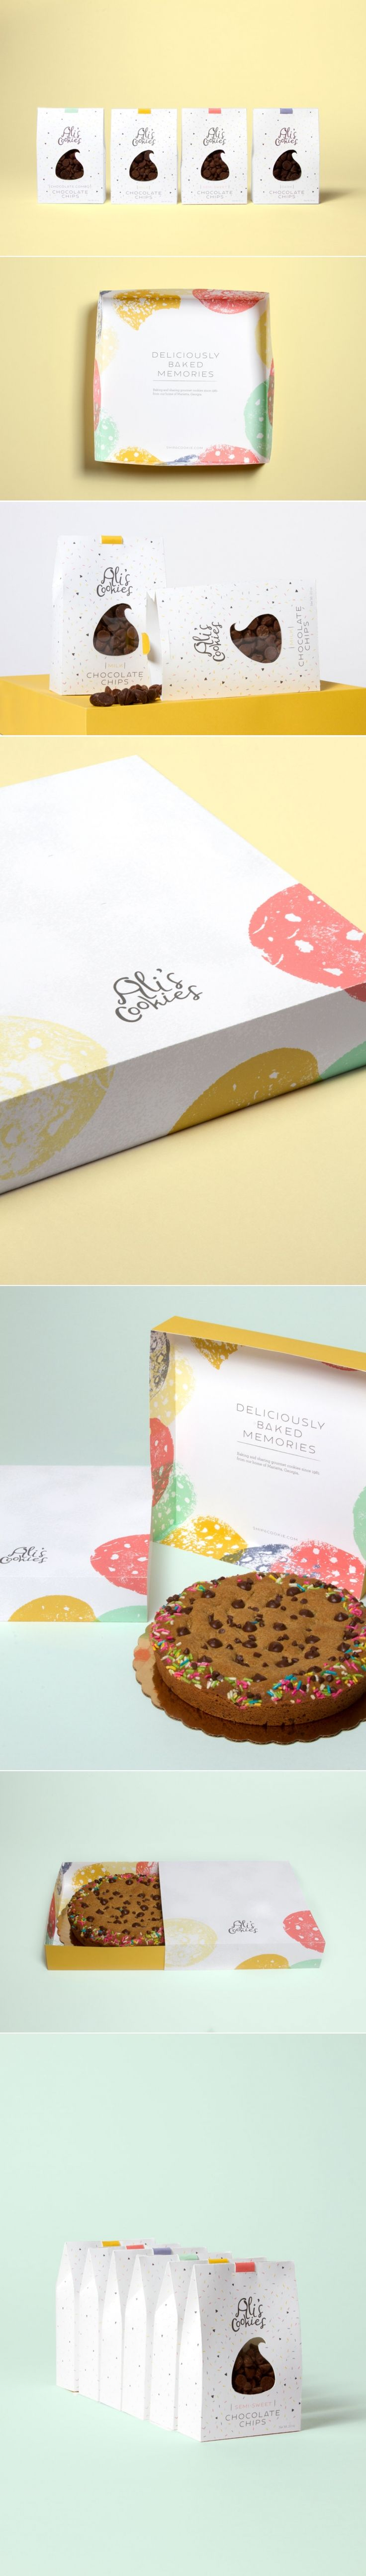 This Cookie Packaging Comes With Some Serious Cheer — The Dieline - Branding & Packaging Design